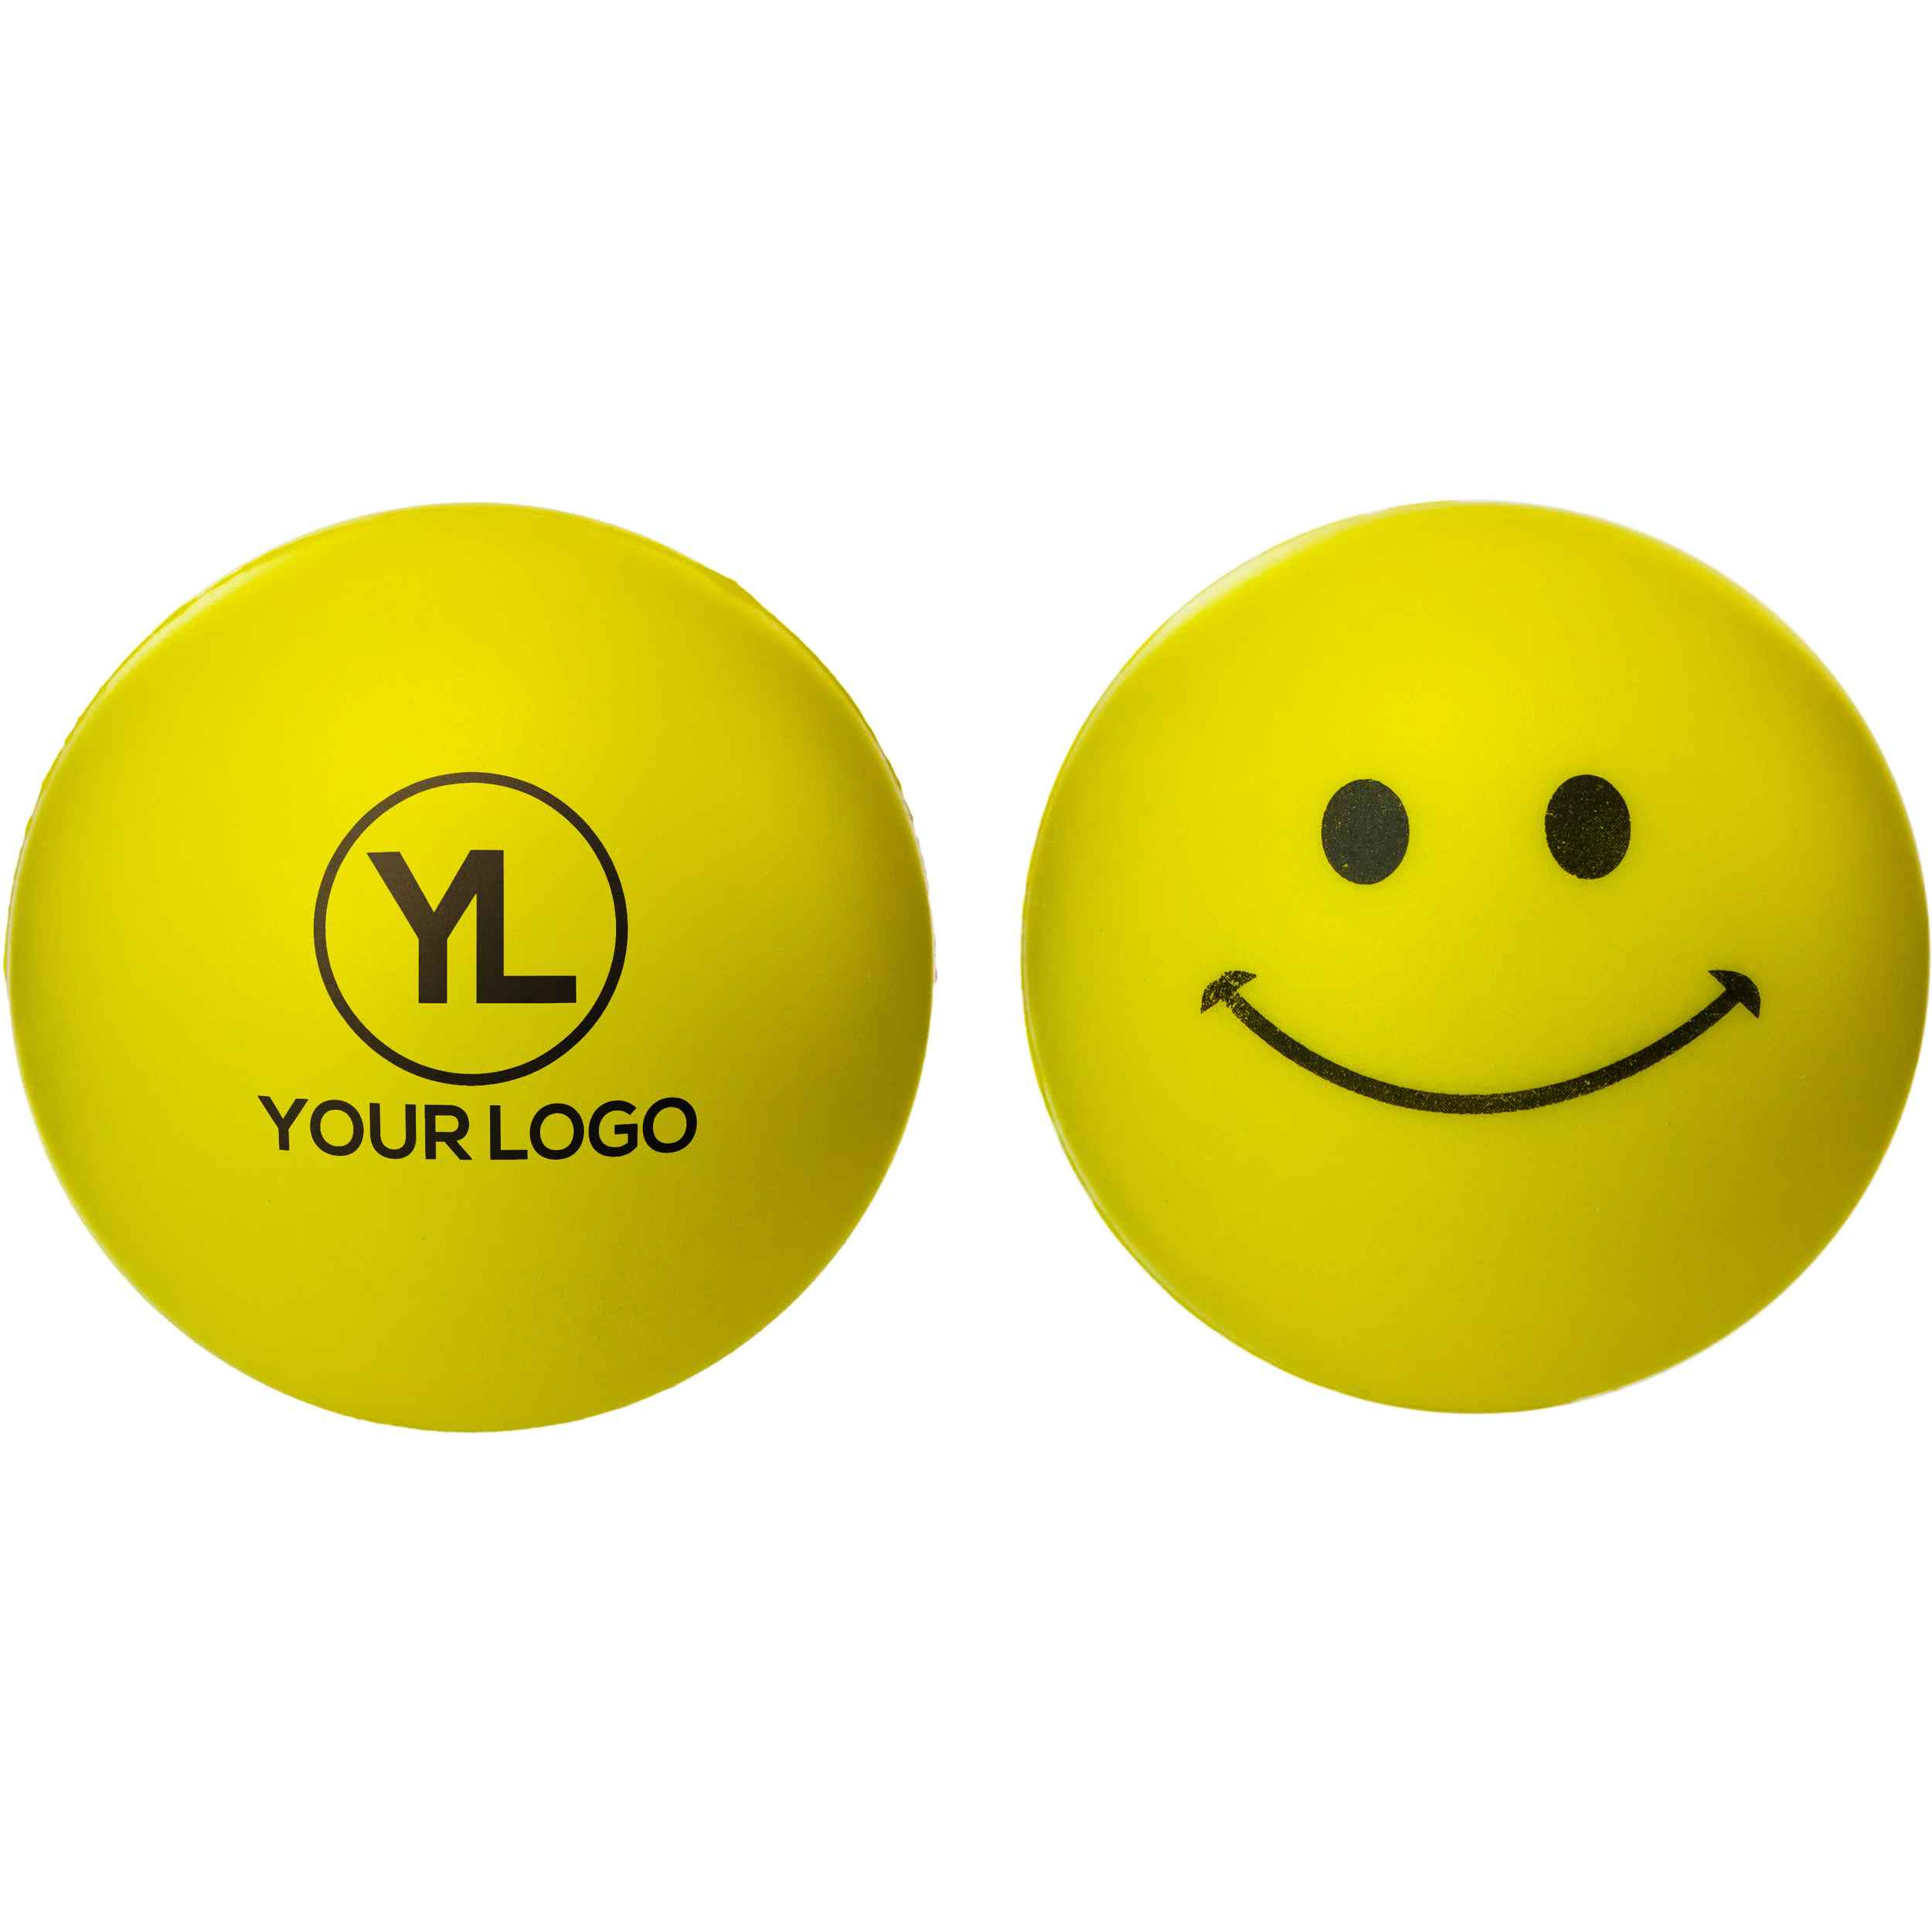 Promotional Smiley Face Stress Relievers with Custom Logo for $0.771 Ea.